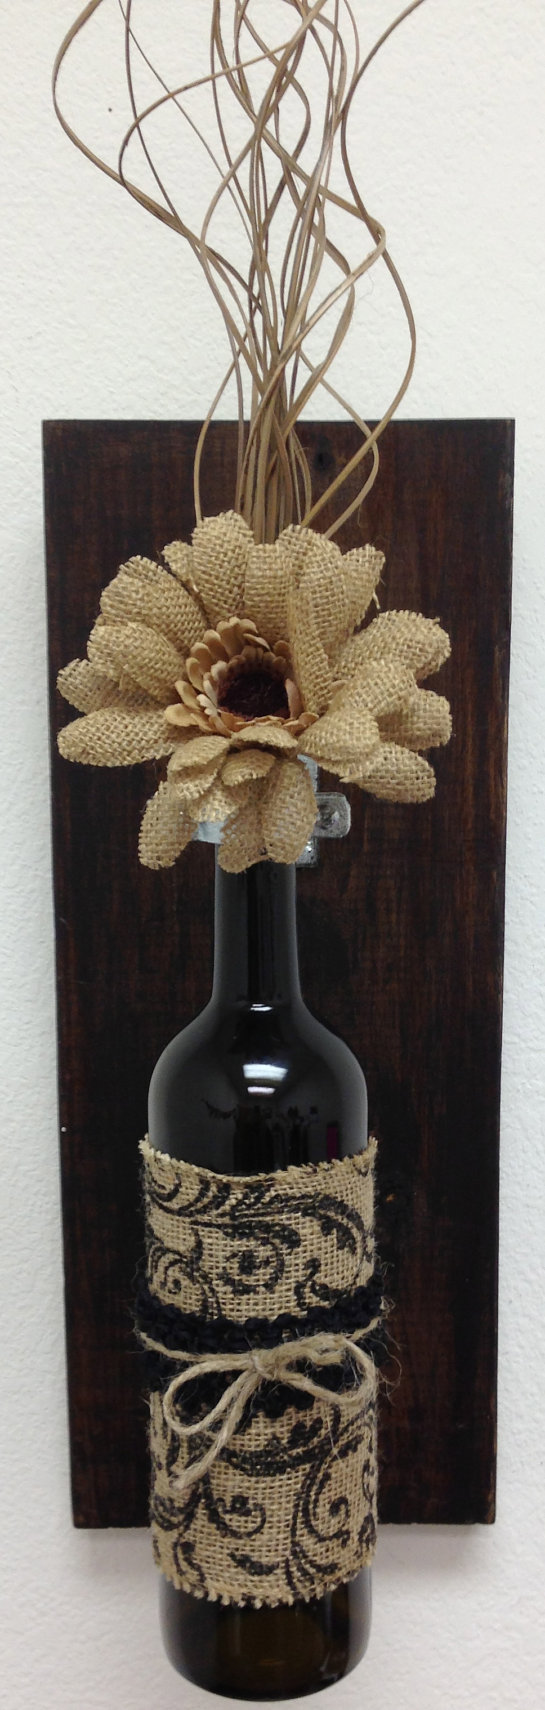 Wall Sconces Wall Hanging Decorative Wine bottle by AdellesAvenue